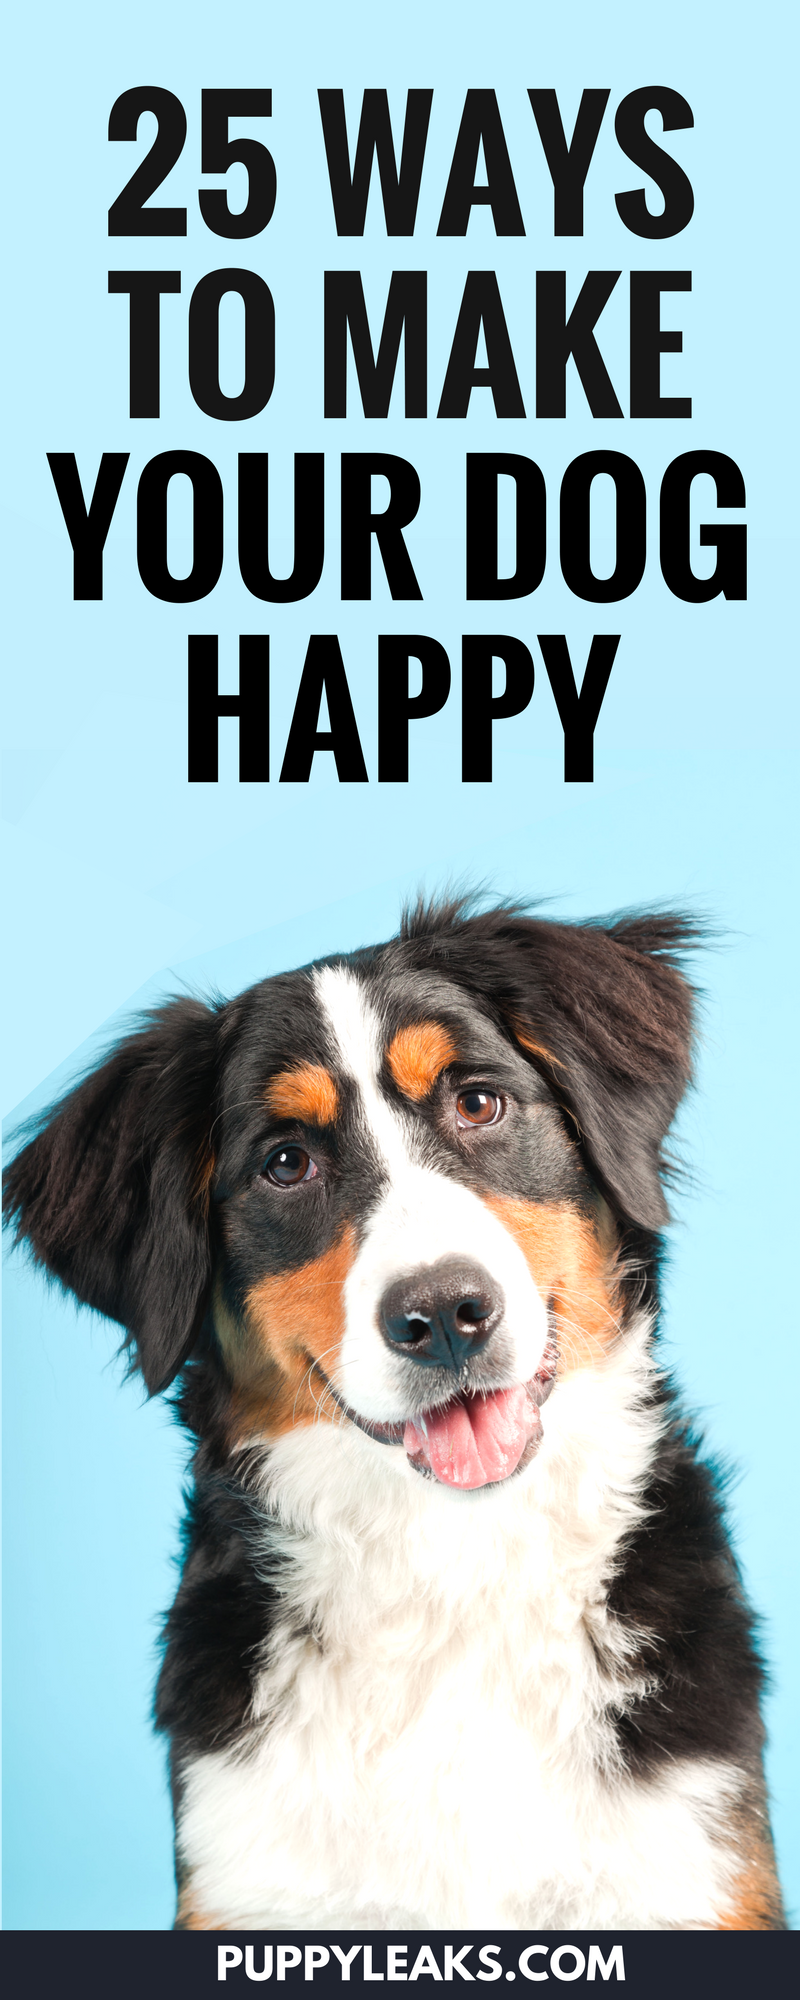 25 Ways to Make Your Dog Happy. Looking for some simple ways to enrich your dog's life? From playing some fun indoor games to letting your dog sniff out on their walk, there's plenty of easy ways to keep your dog happy. #dogs #dogtraining #dogtips #dogcare #dogadvice